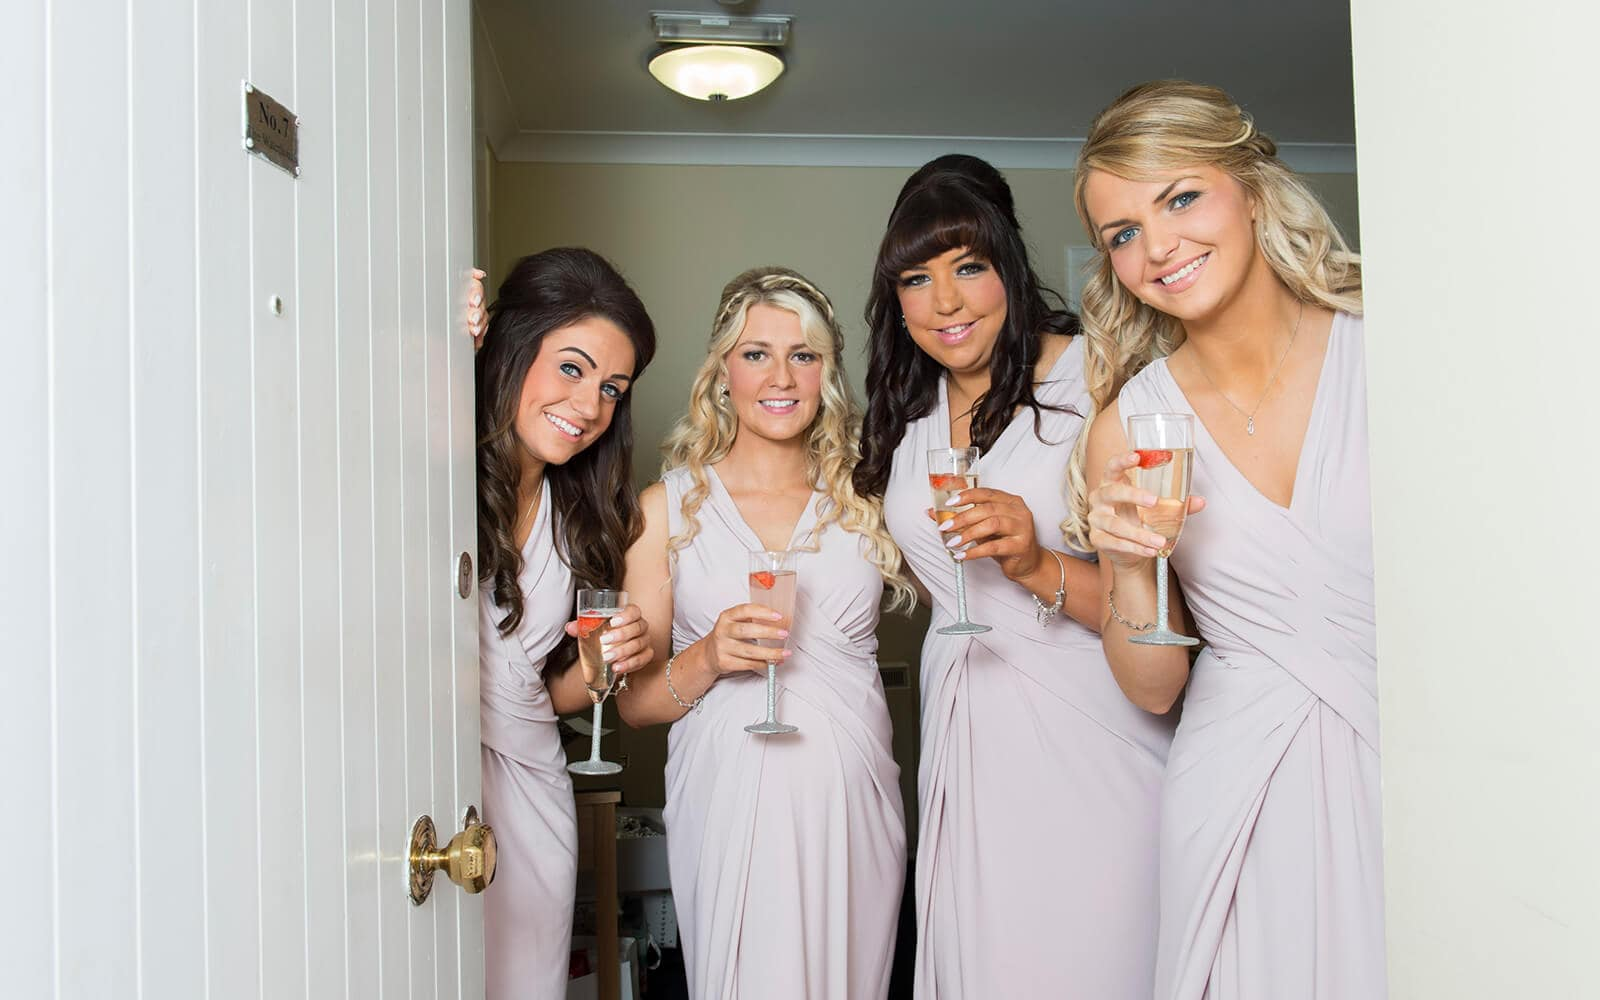 Ayrshire Wedding photos of bridesmaids